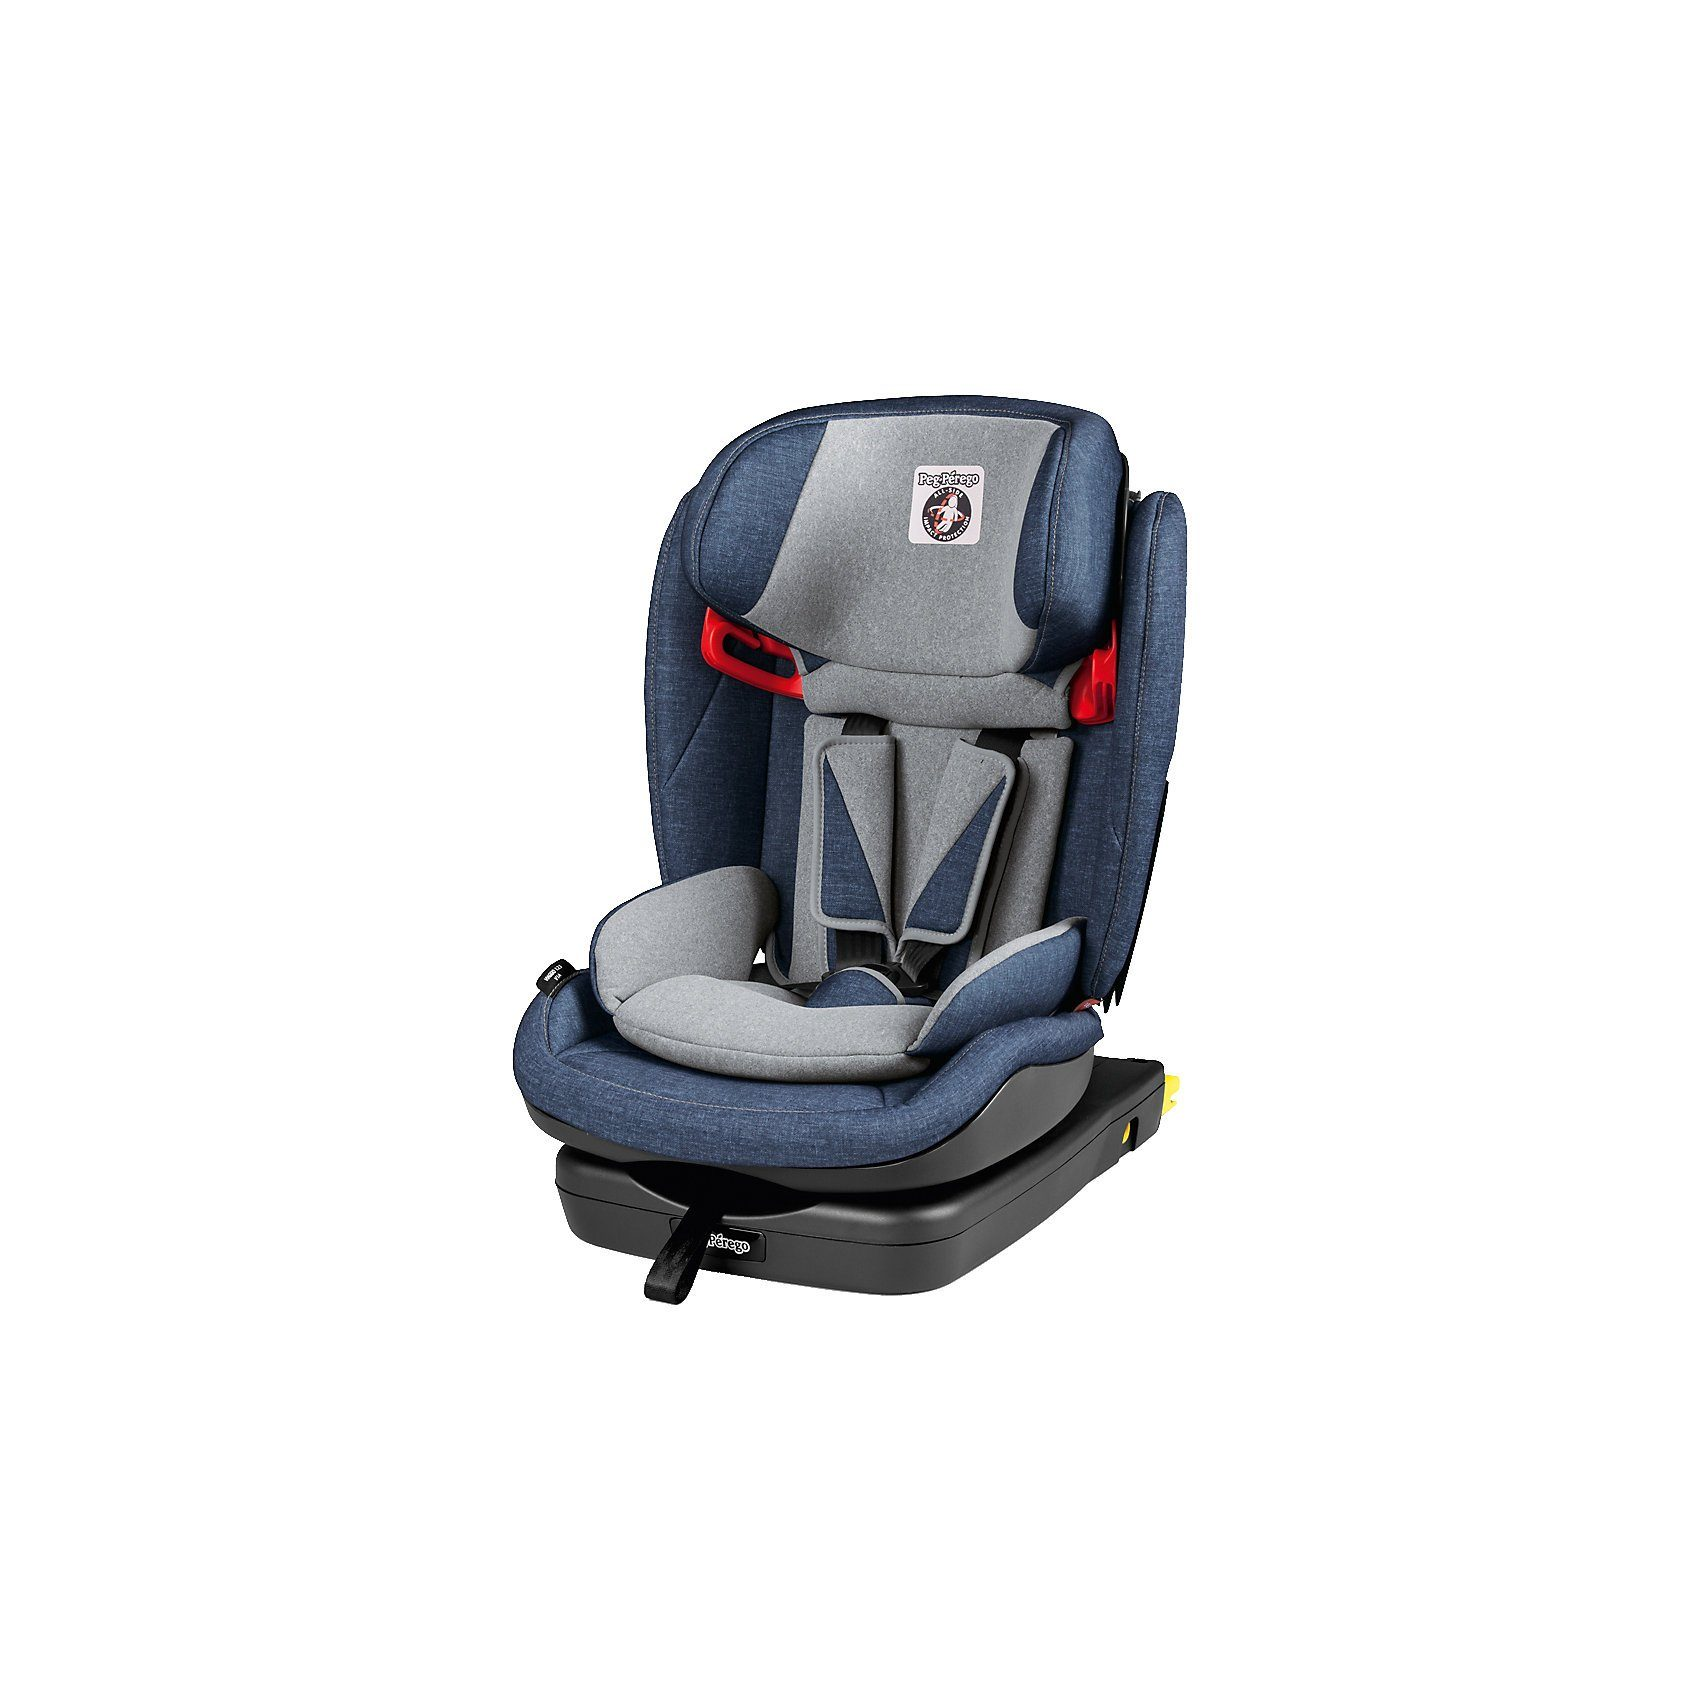 Peg Perego Auto-Kindersitz Viaggio 1-2-3 Via, Urban Denim, 2018